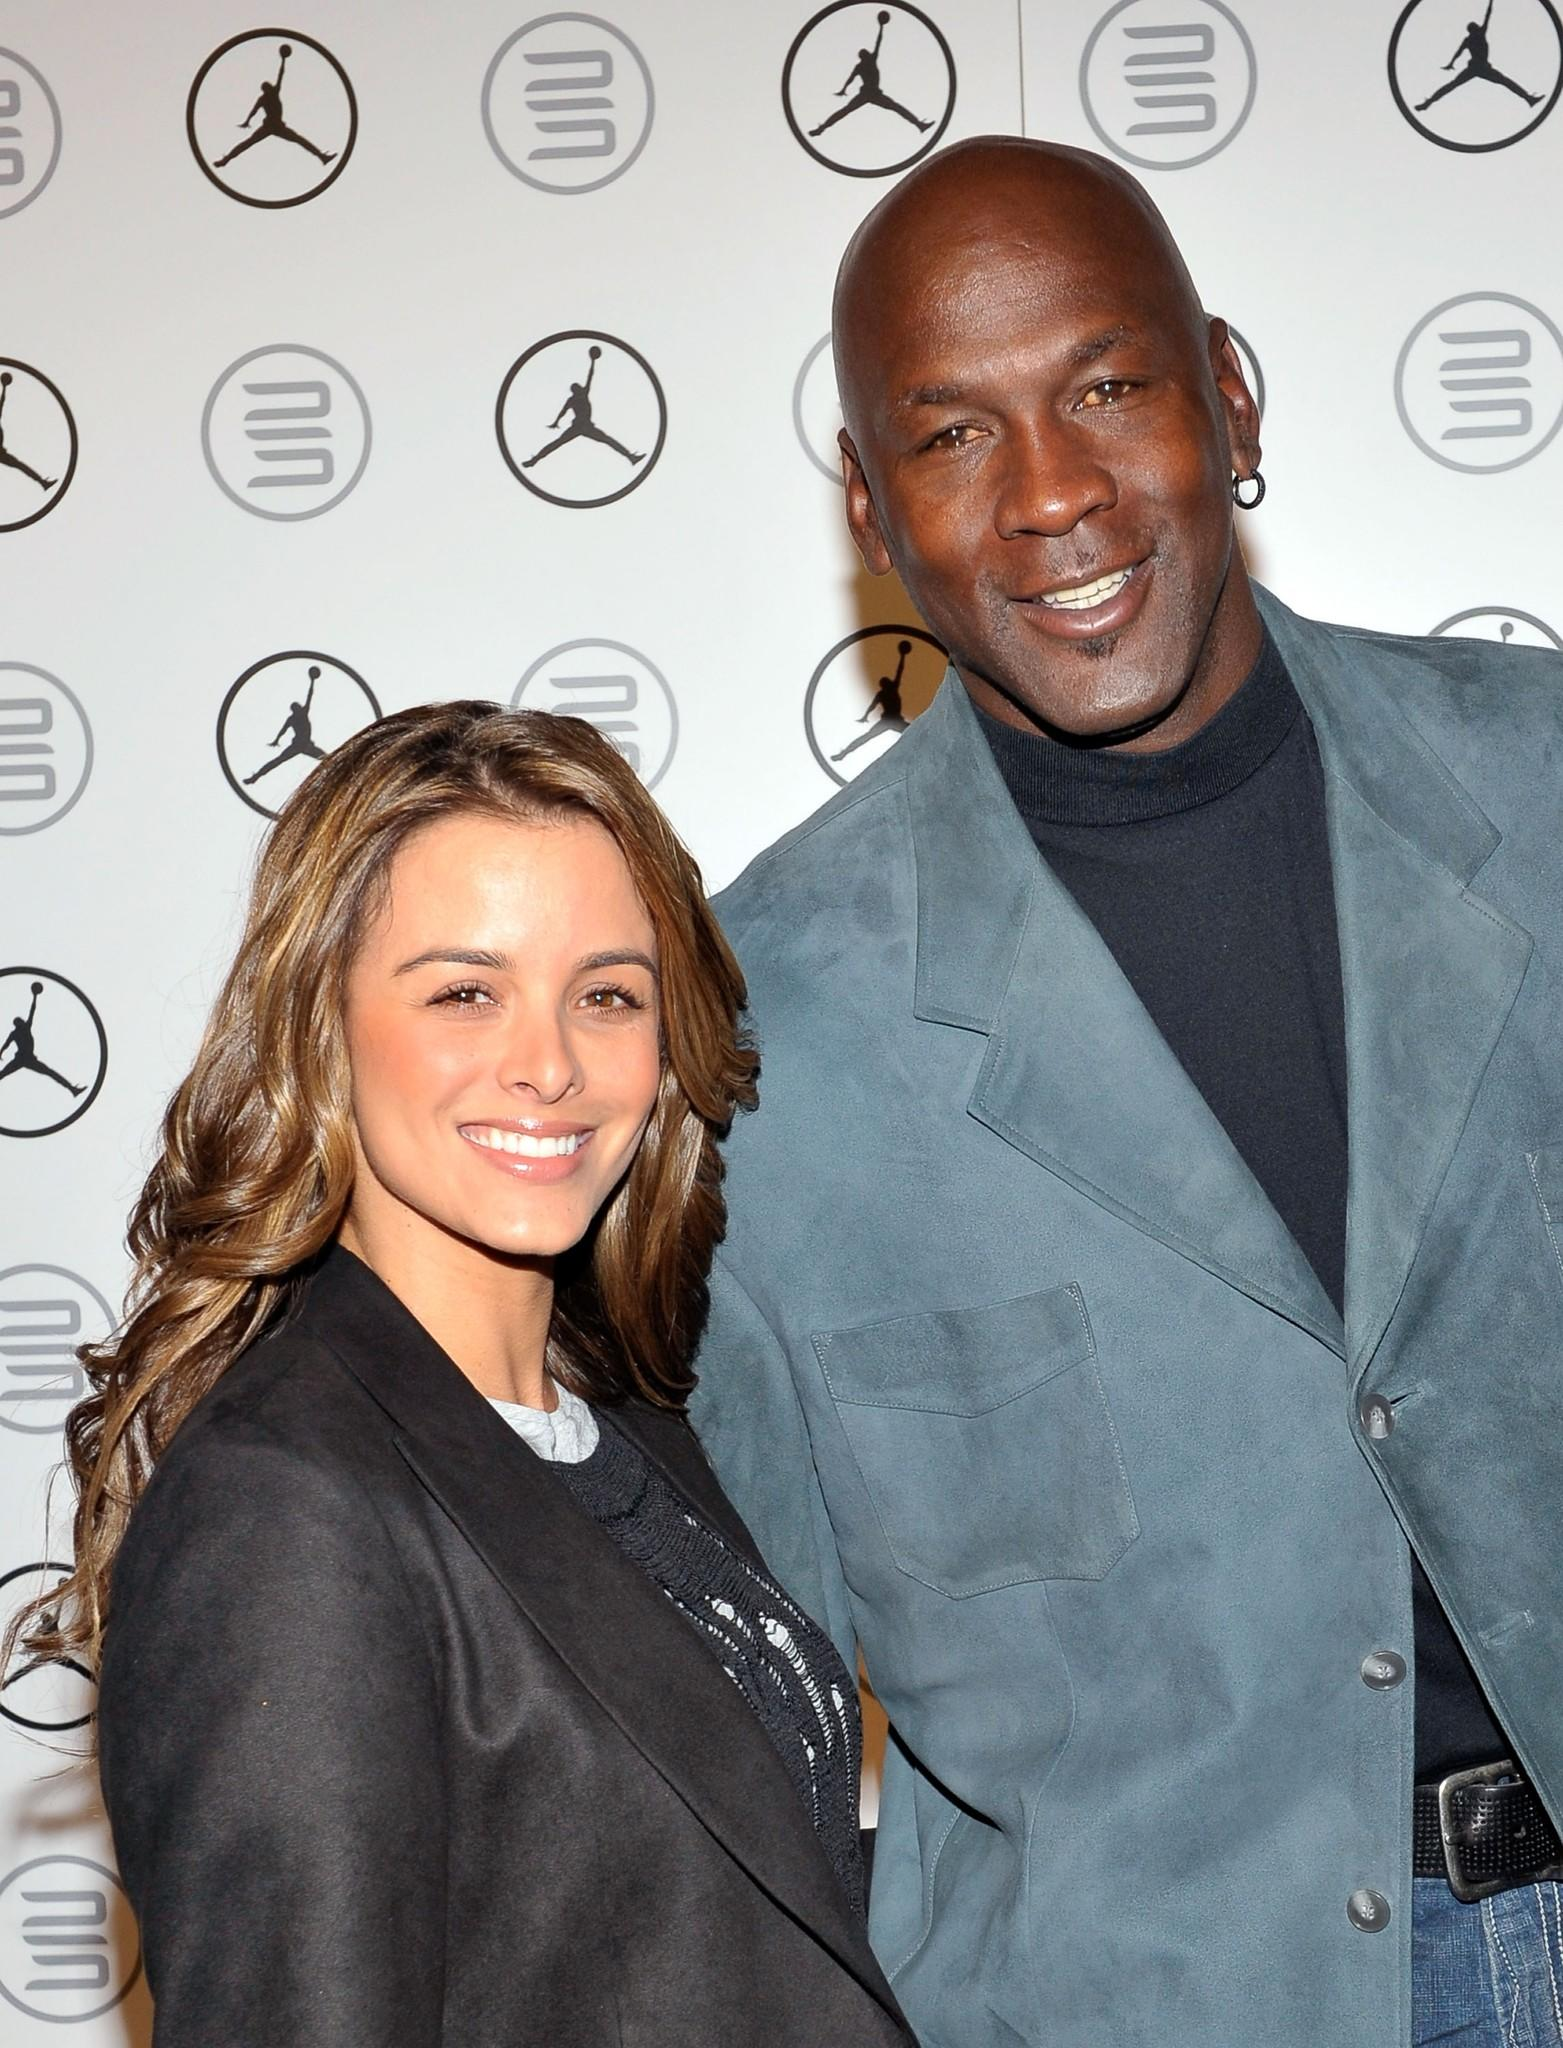 Michael Jordan and his wife Yvette Prieto welcomed identical twin daughters on February 9, 2014 in West Palm Beach, Florida.